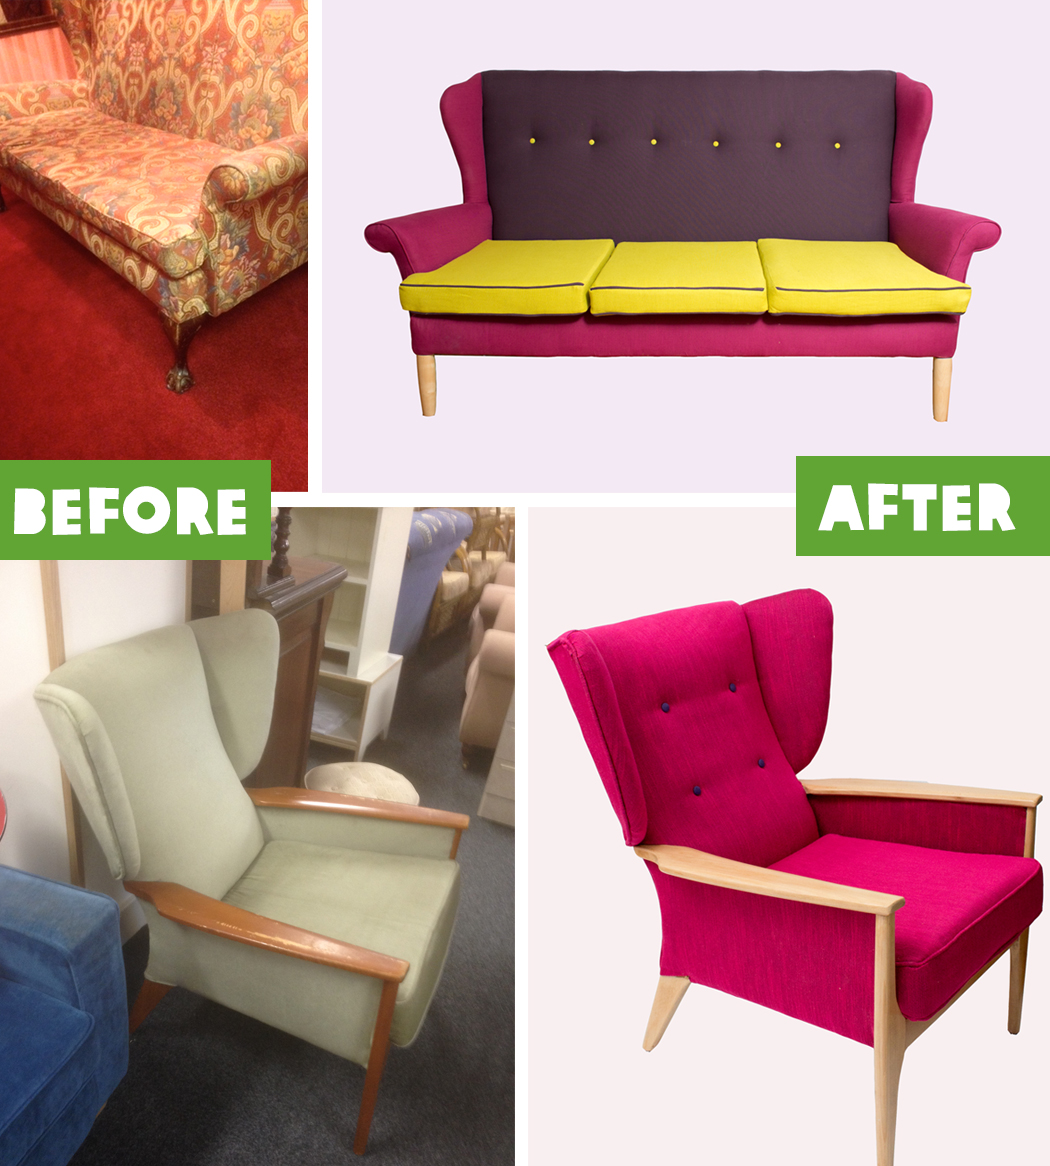 Upcycling Projects From Oxfam Home